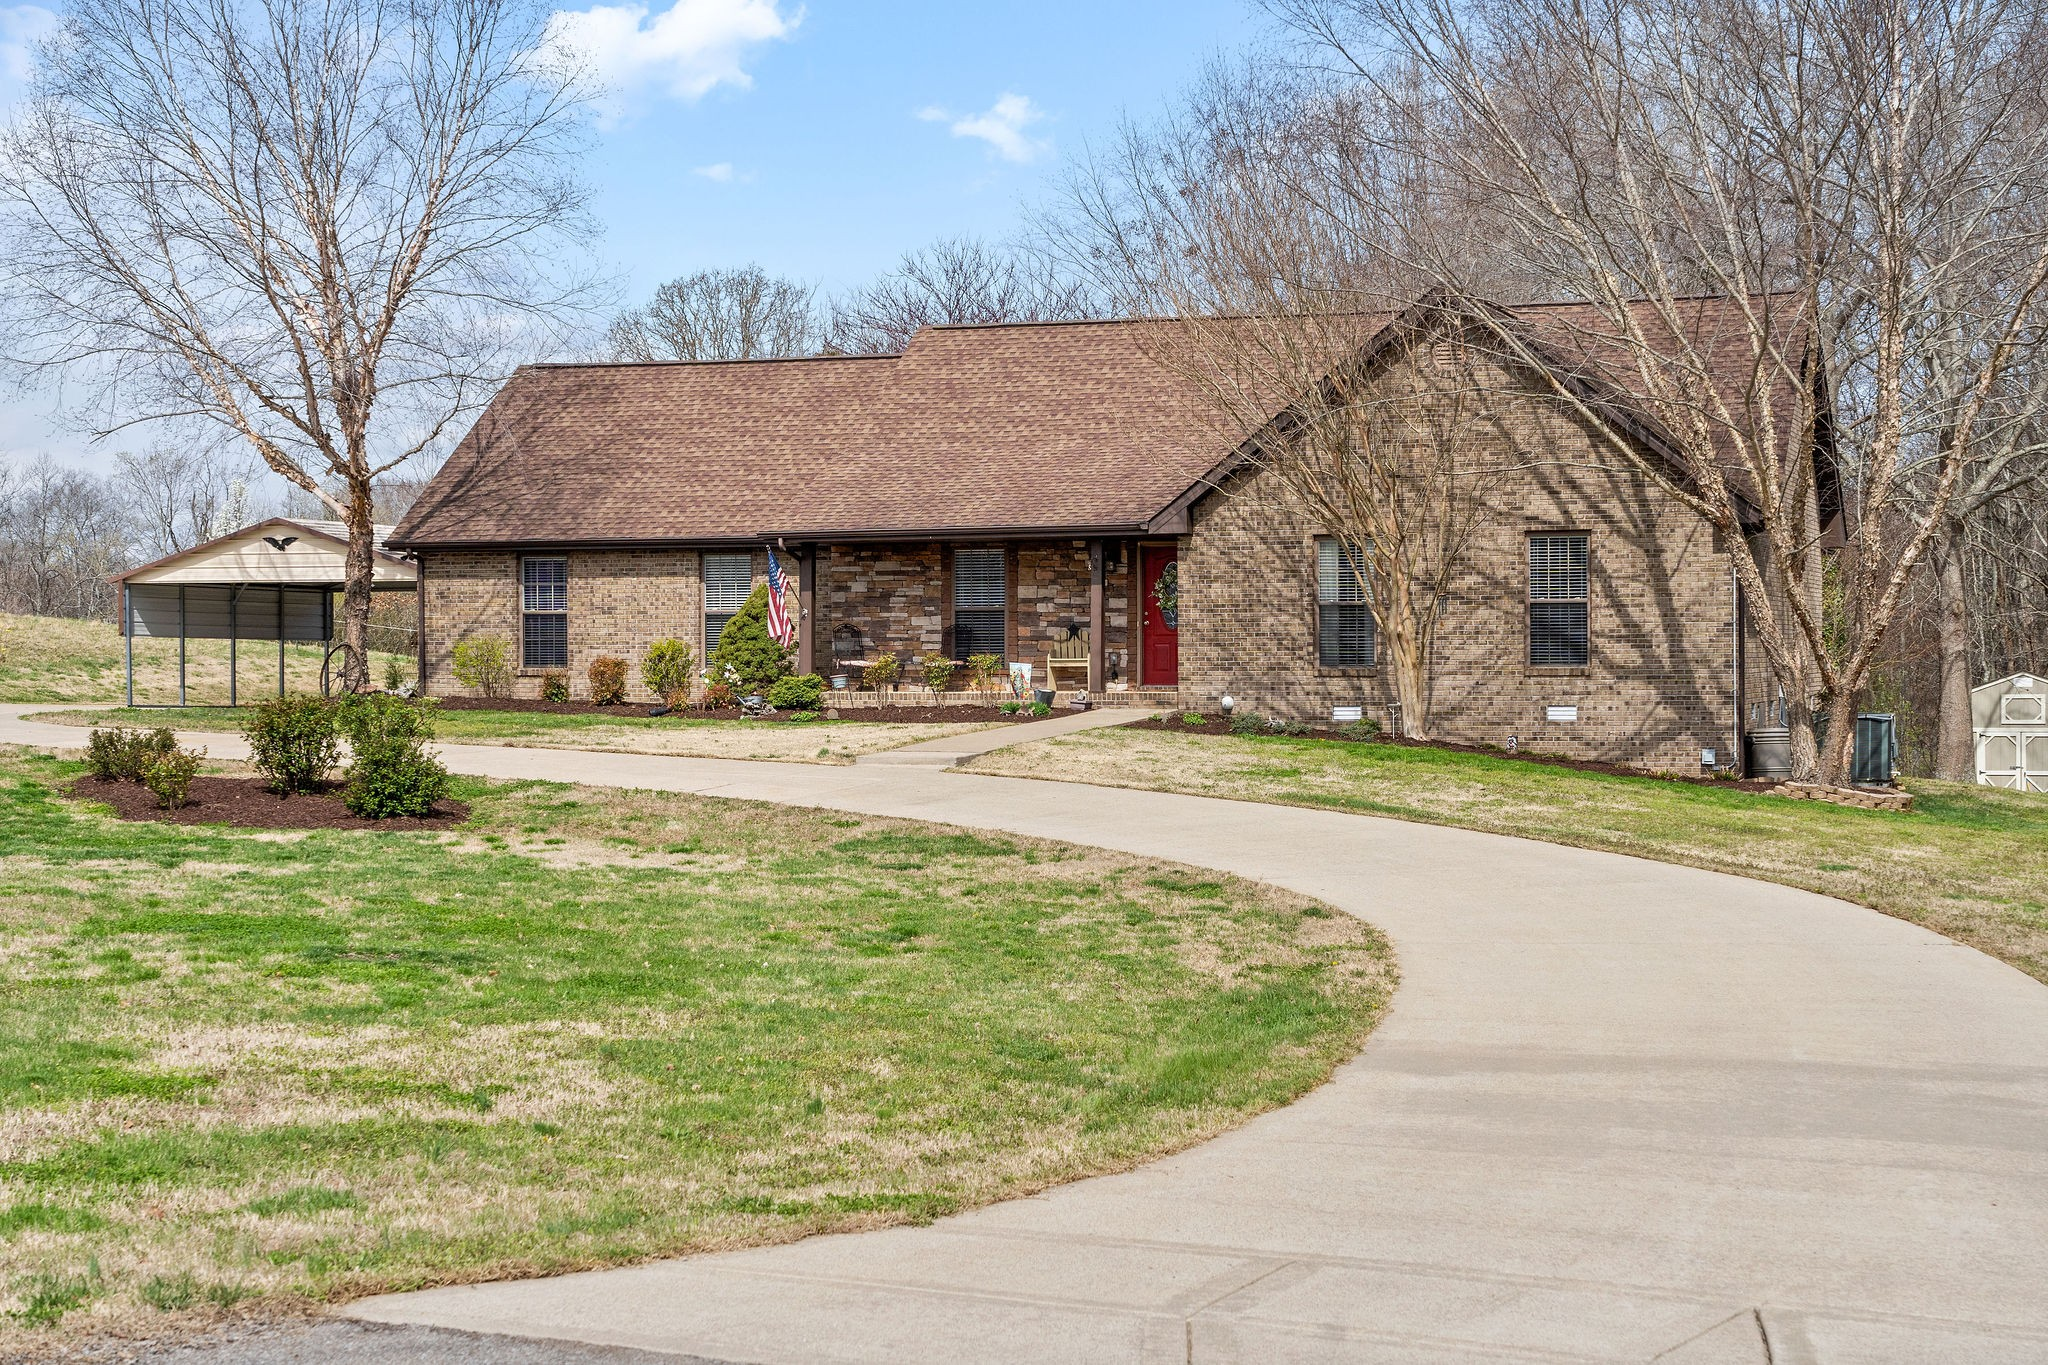 1591 Neblett Rd Property Photo - Clarksville, TN real estate listing